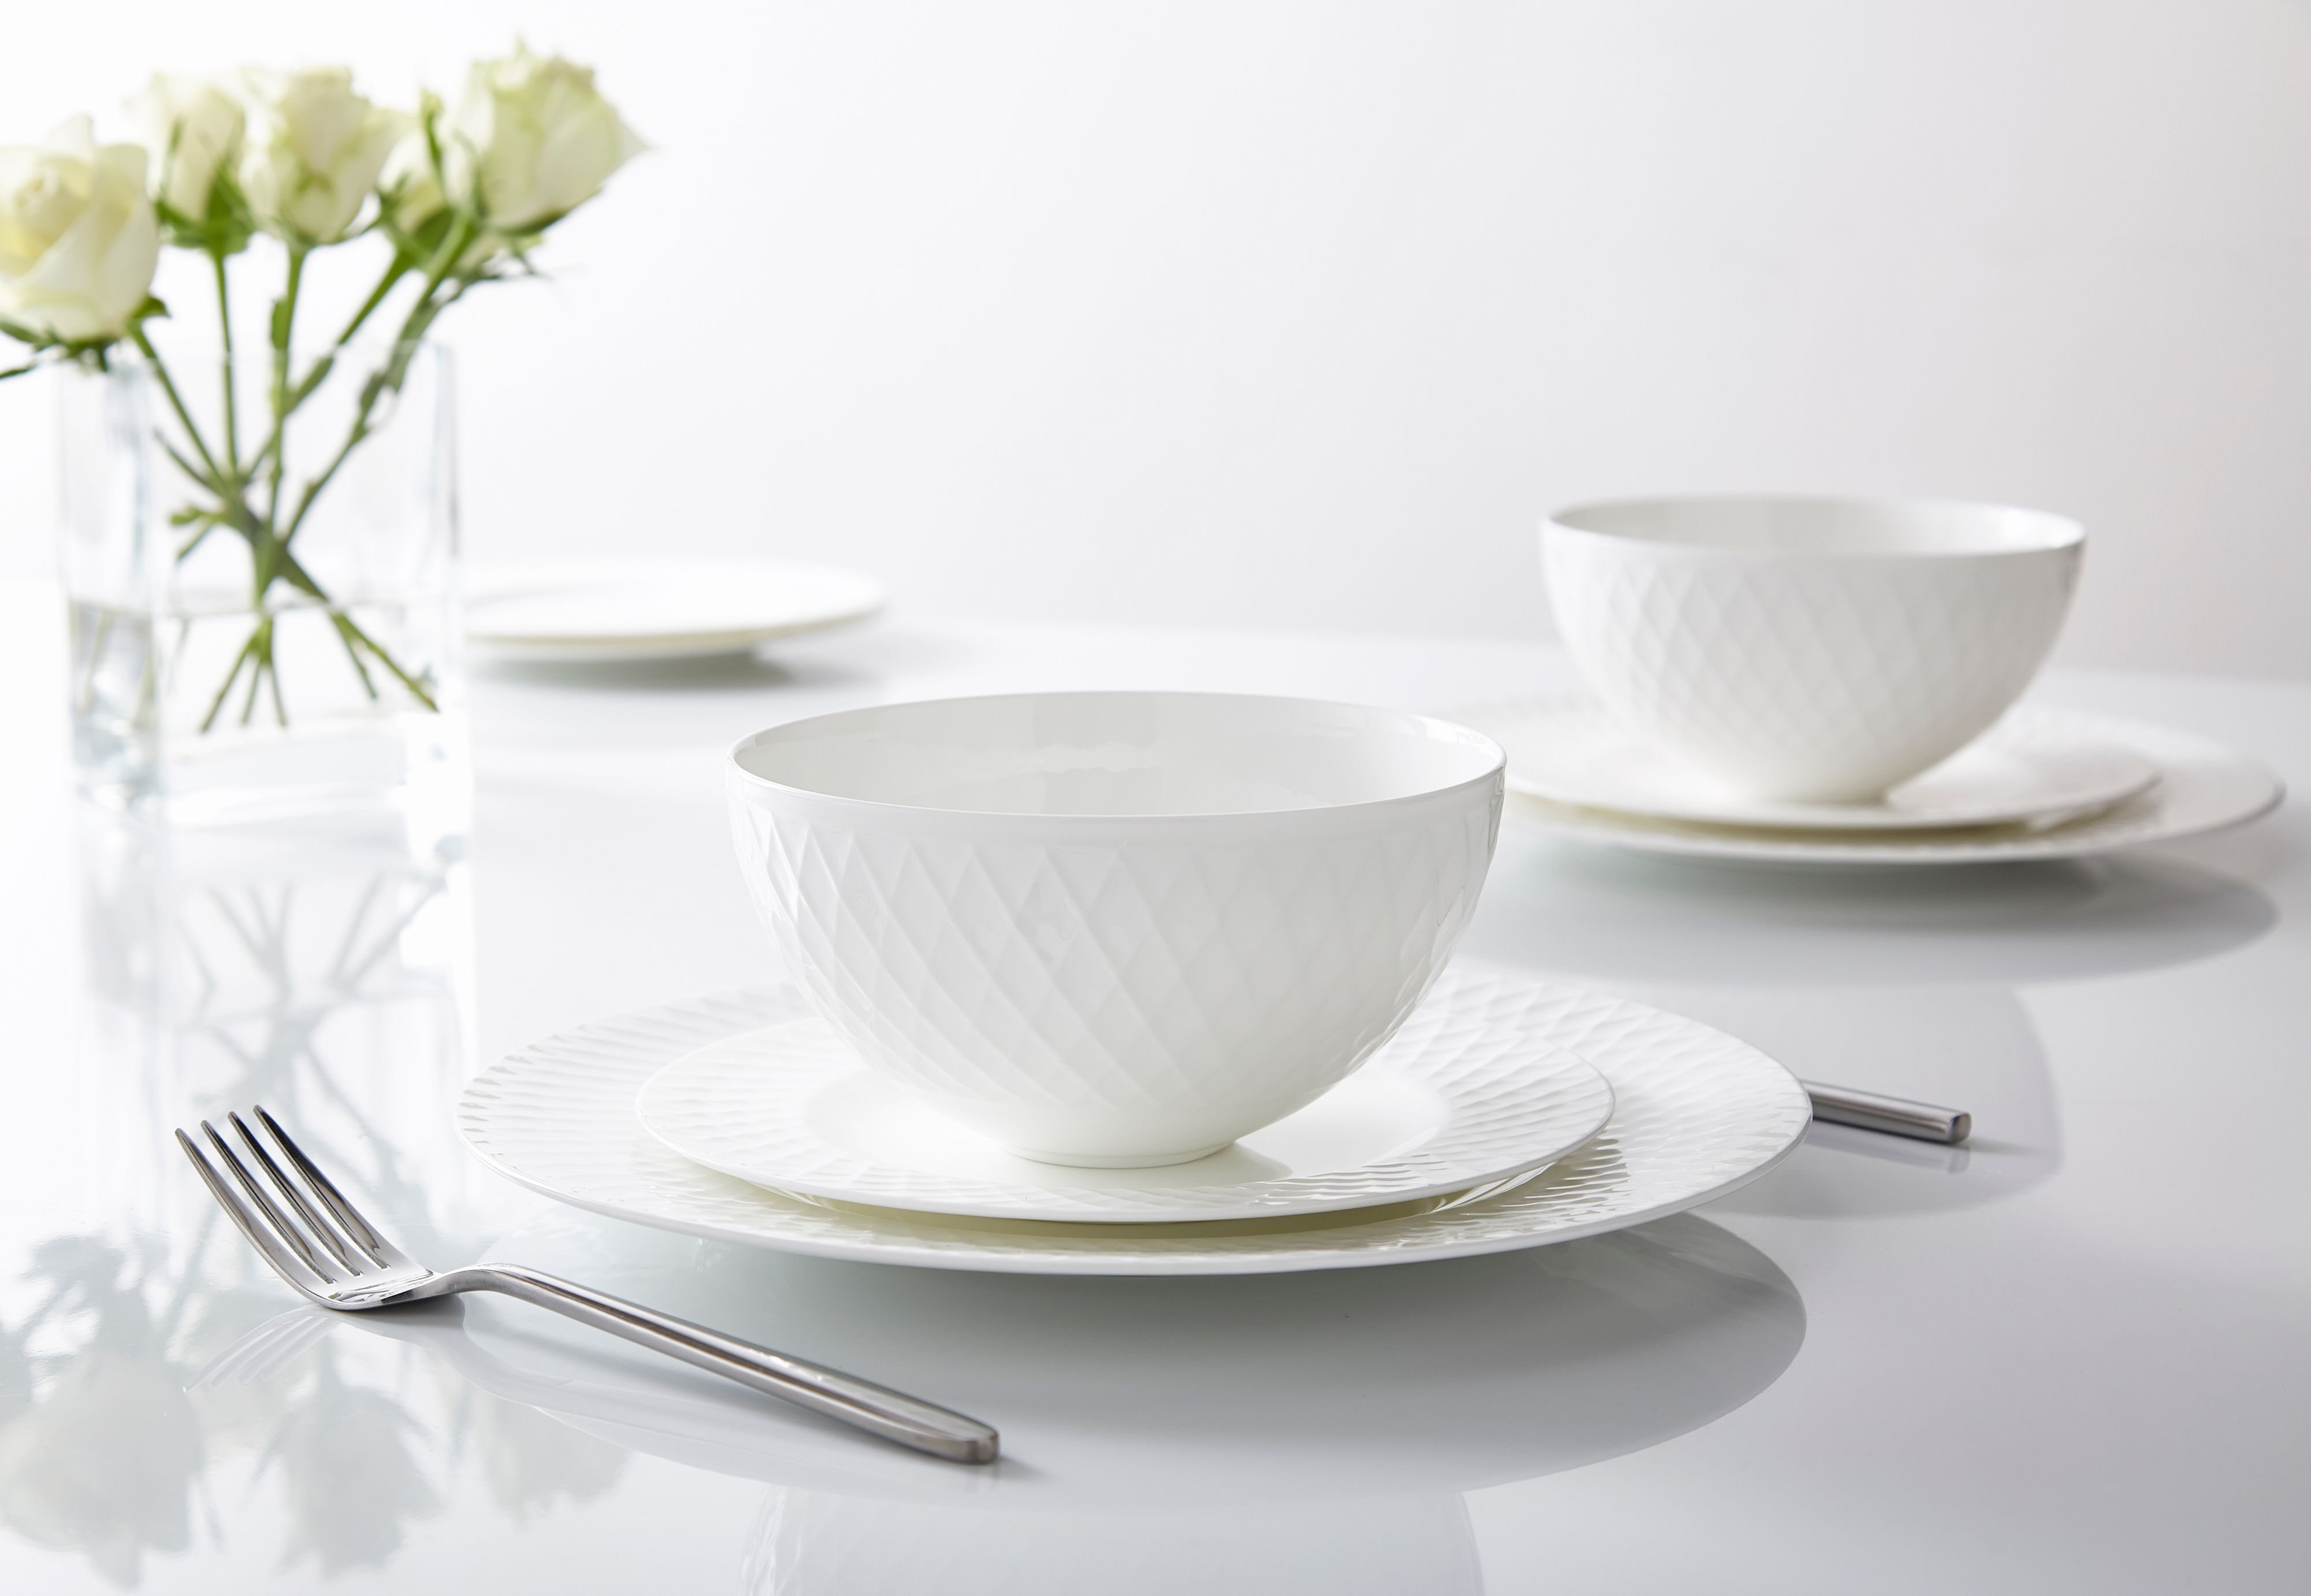 buy cheap bone china dinnerware compare products prices for best uk deals. Black Bedroom Furniture Sets. Home Design Ideas